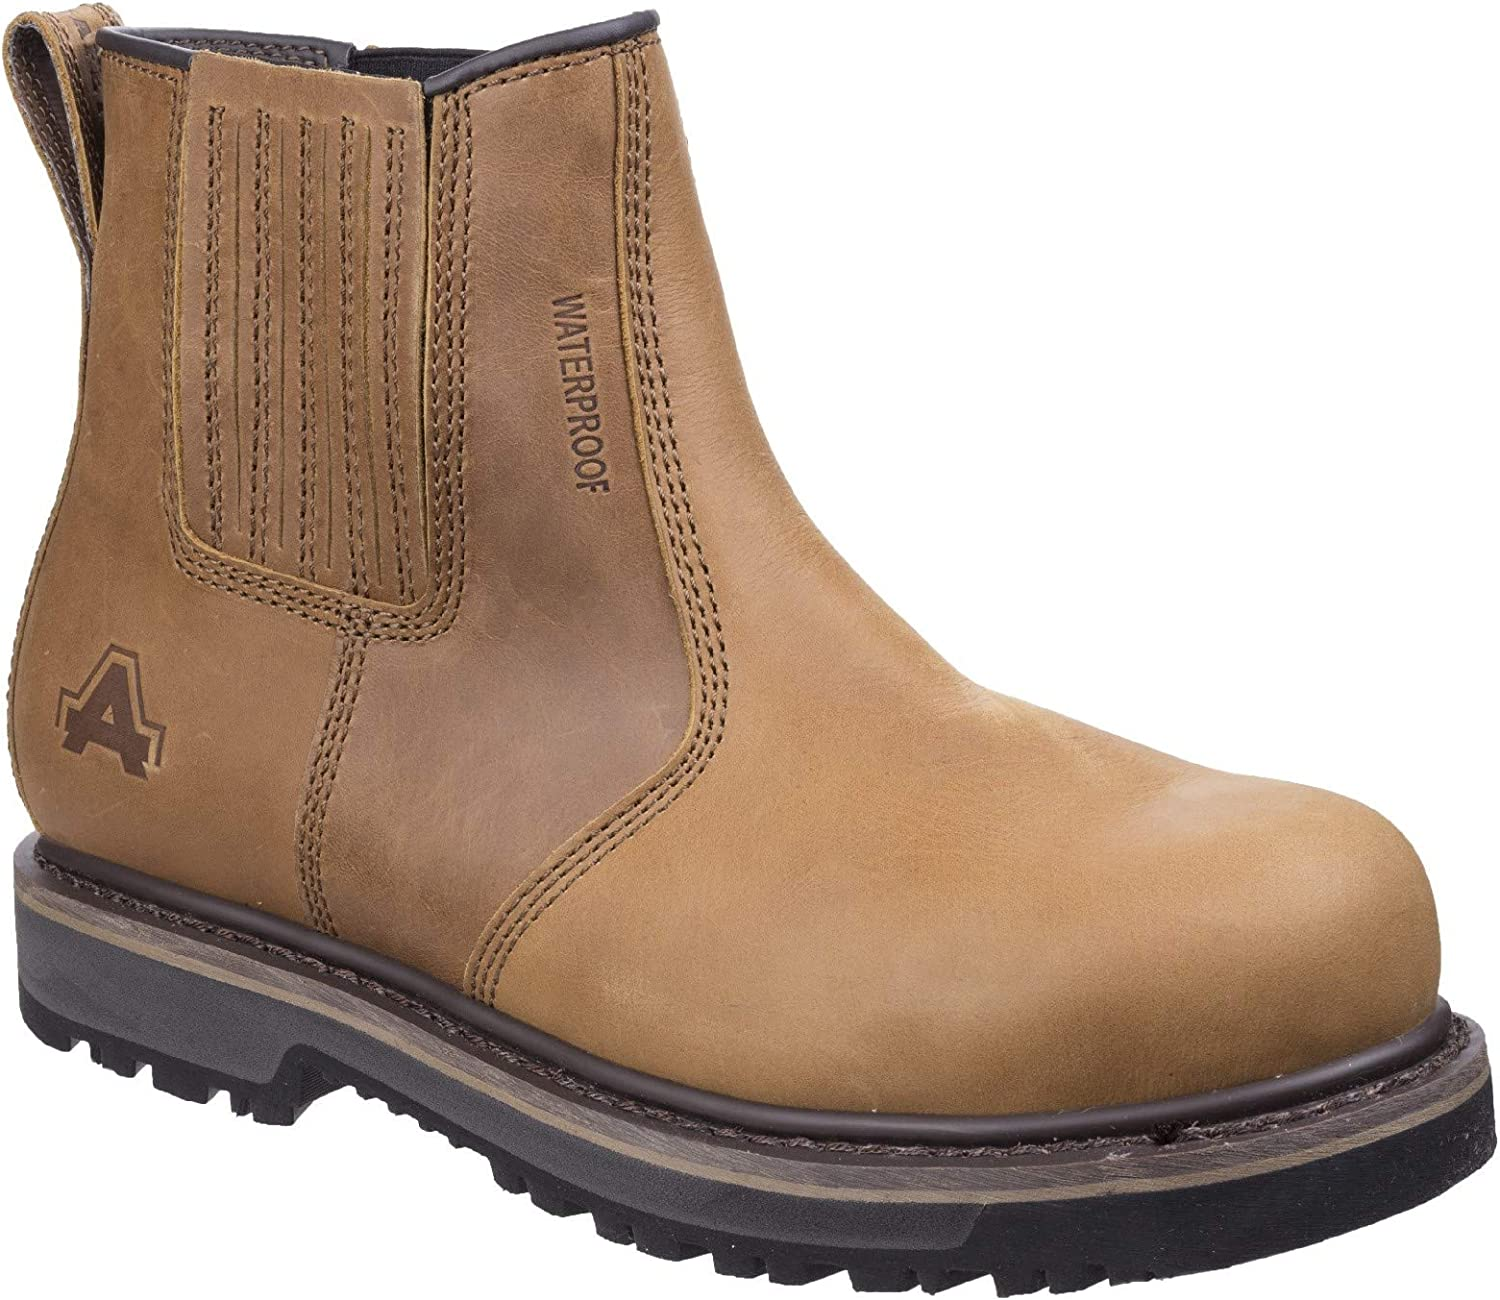 Amblers Safety Mens AS232 Safety Boot Tan Size UK 6 EU 39